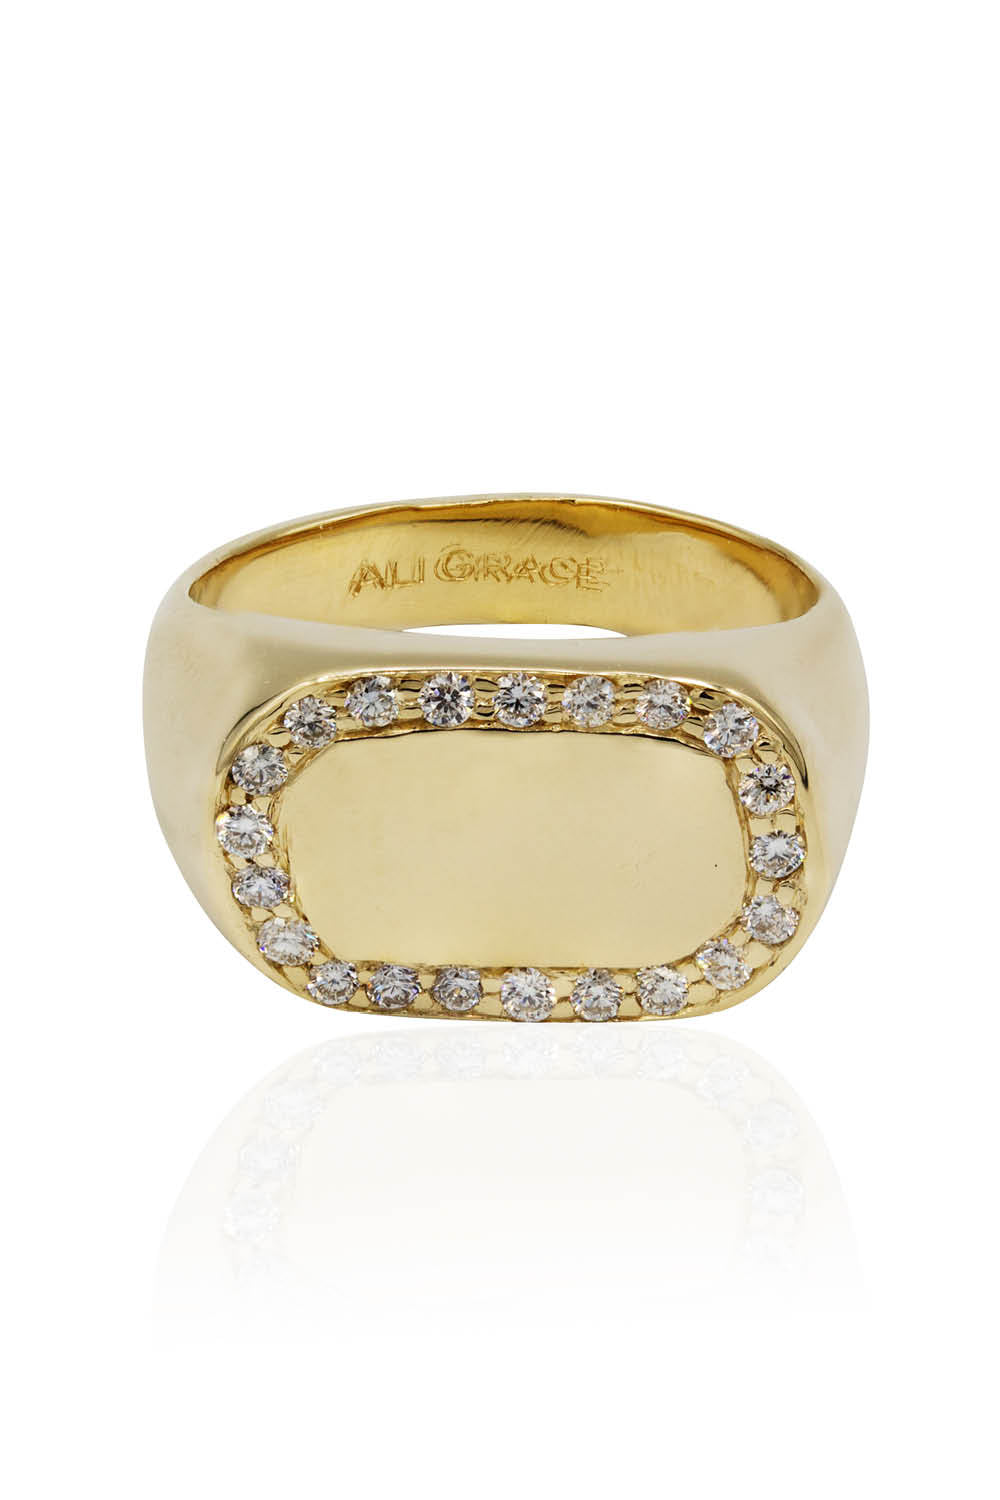 14k Yellow Gold Signet Ring with Diamond Pave